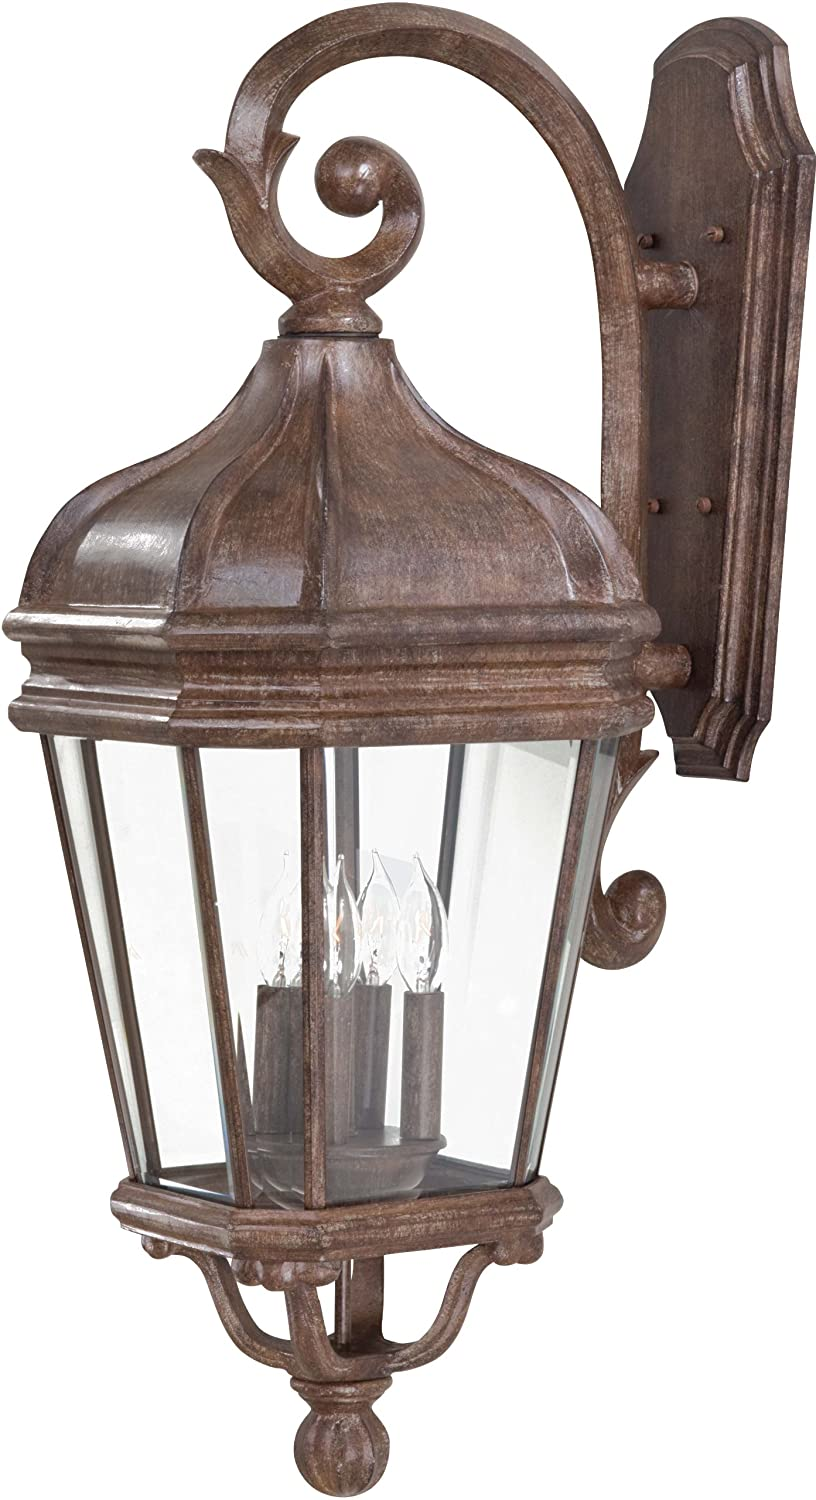 Minka Lavery 8692 61 Harrison 3 Light Wall Mount Outdoor Fixture, Vintage  Rust With Clear Beveled Glass   Wall Porch Lights   Amazon.com